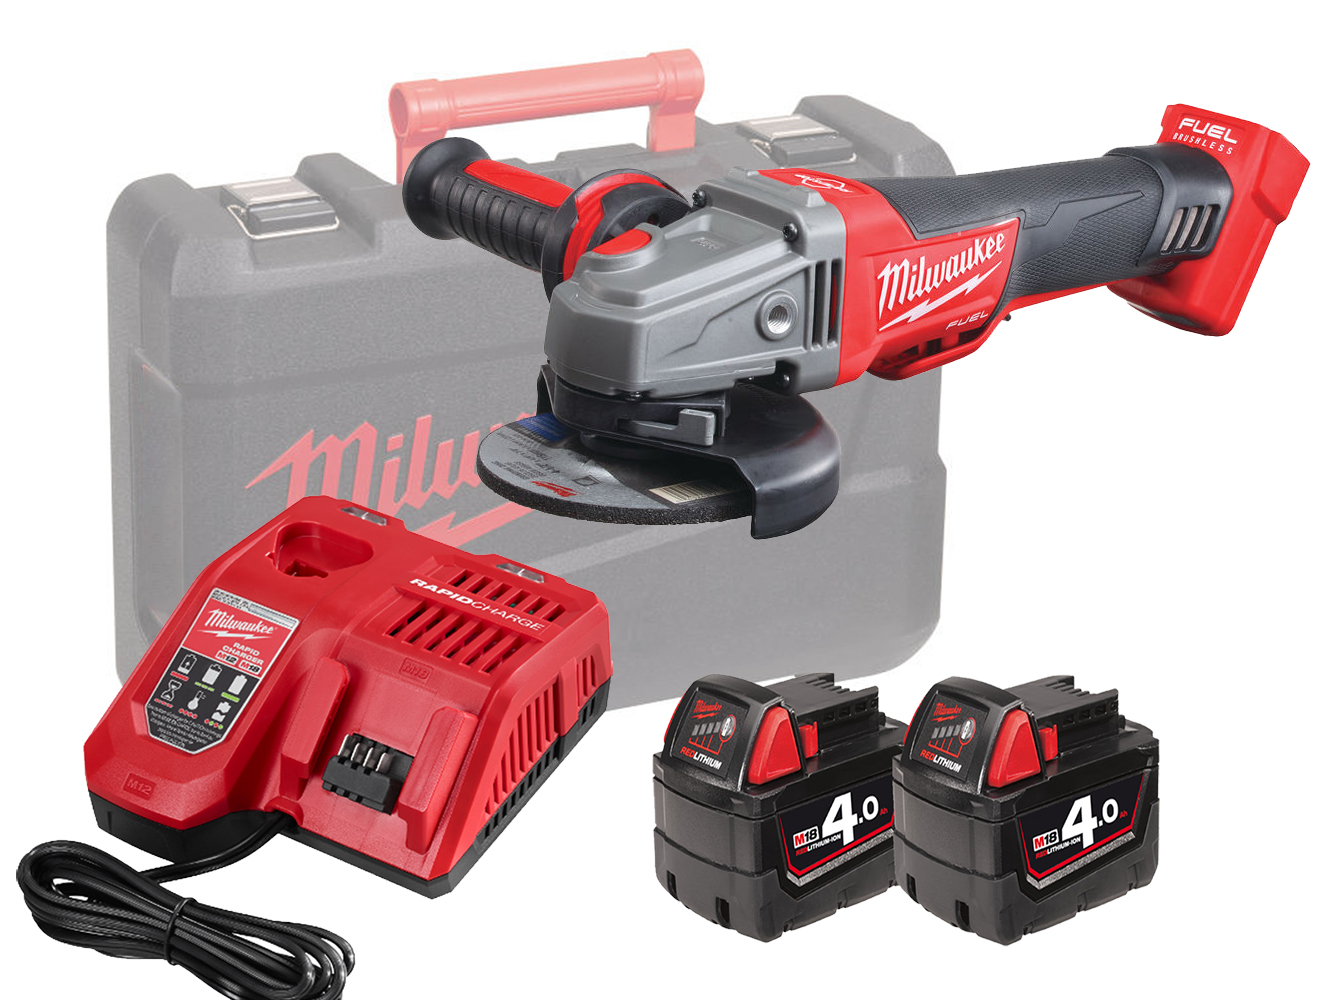 MILWAUKEE 18V FUEL 115MM BREAKING GRINDER -  M18CAG115XPDB - 4.0AH PACK